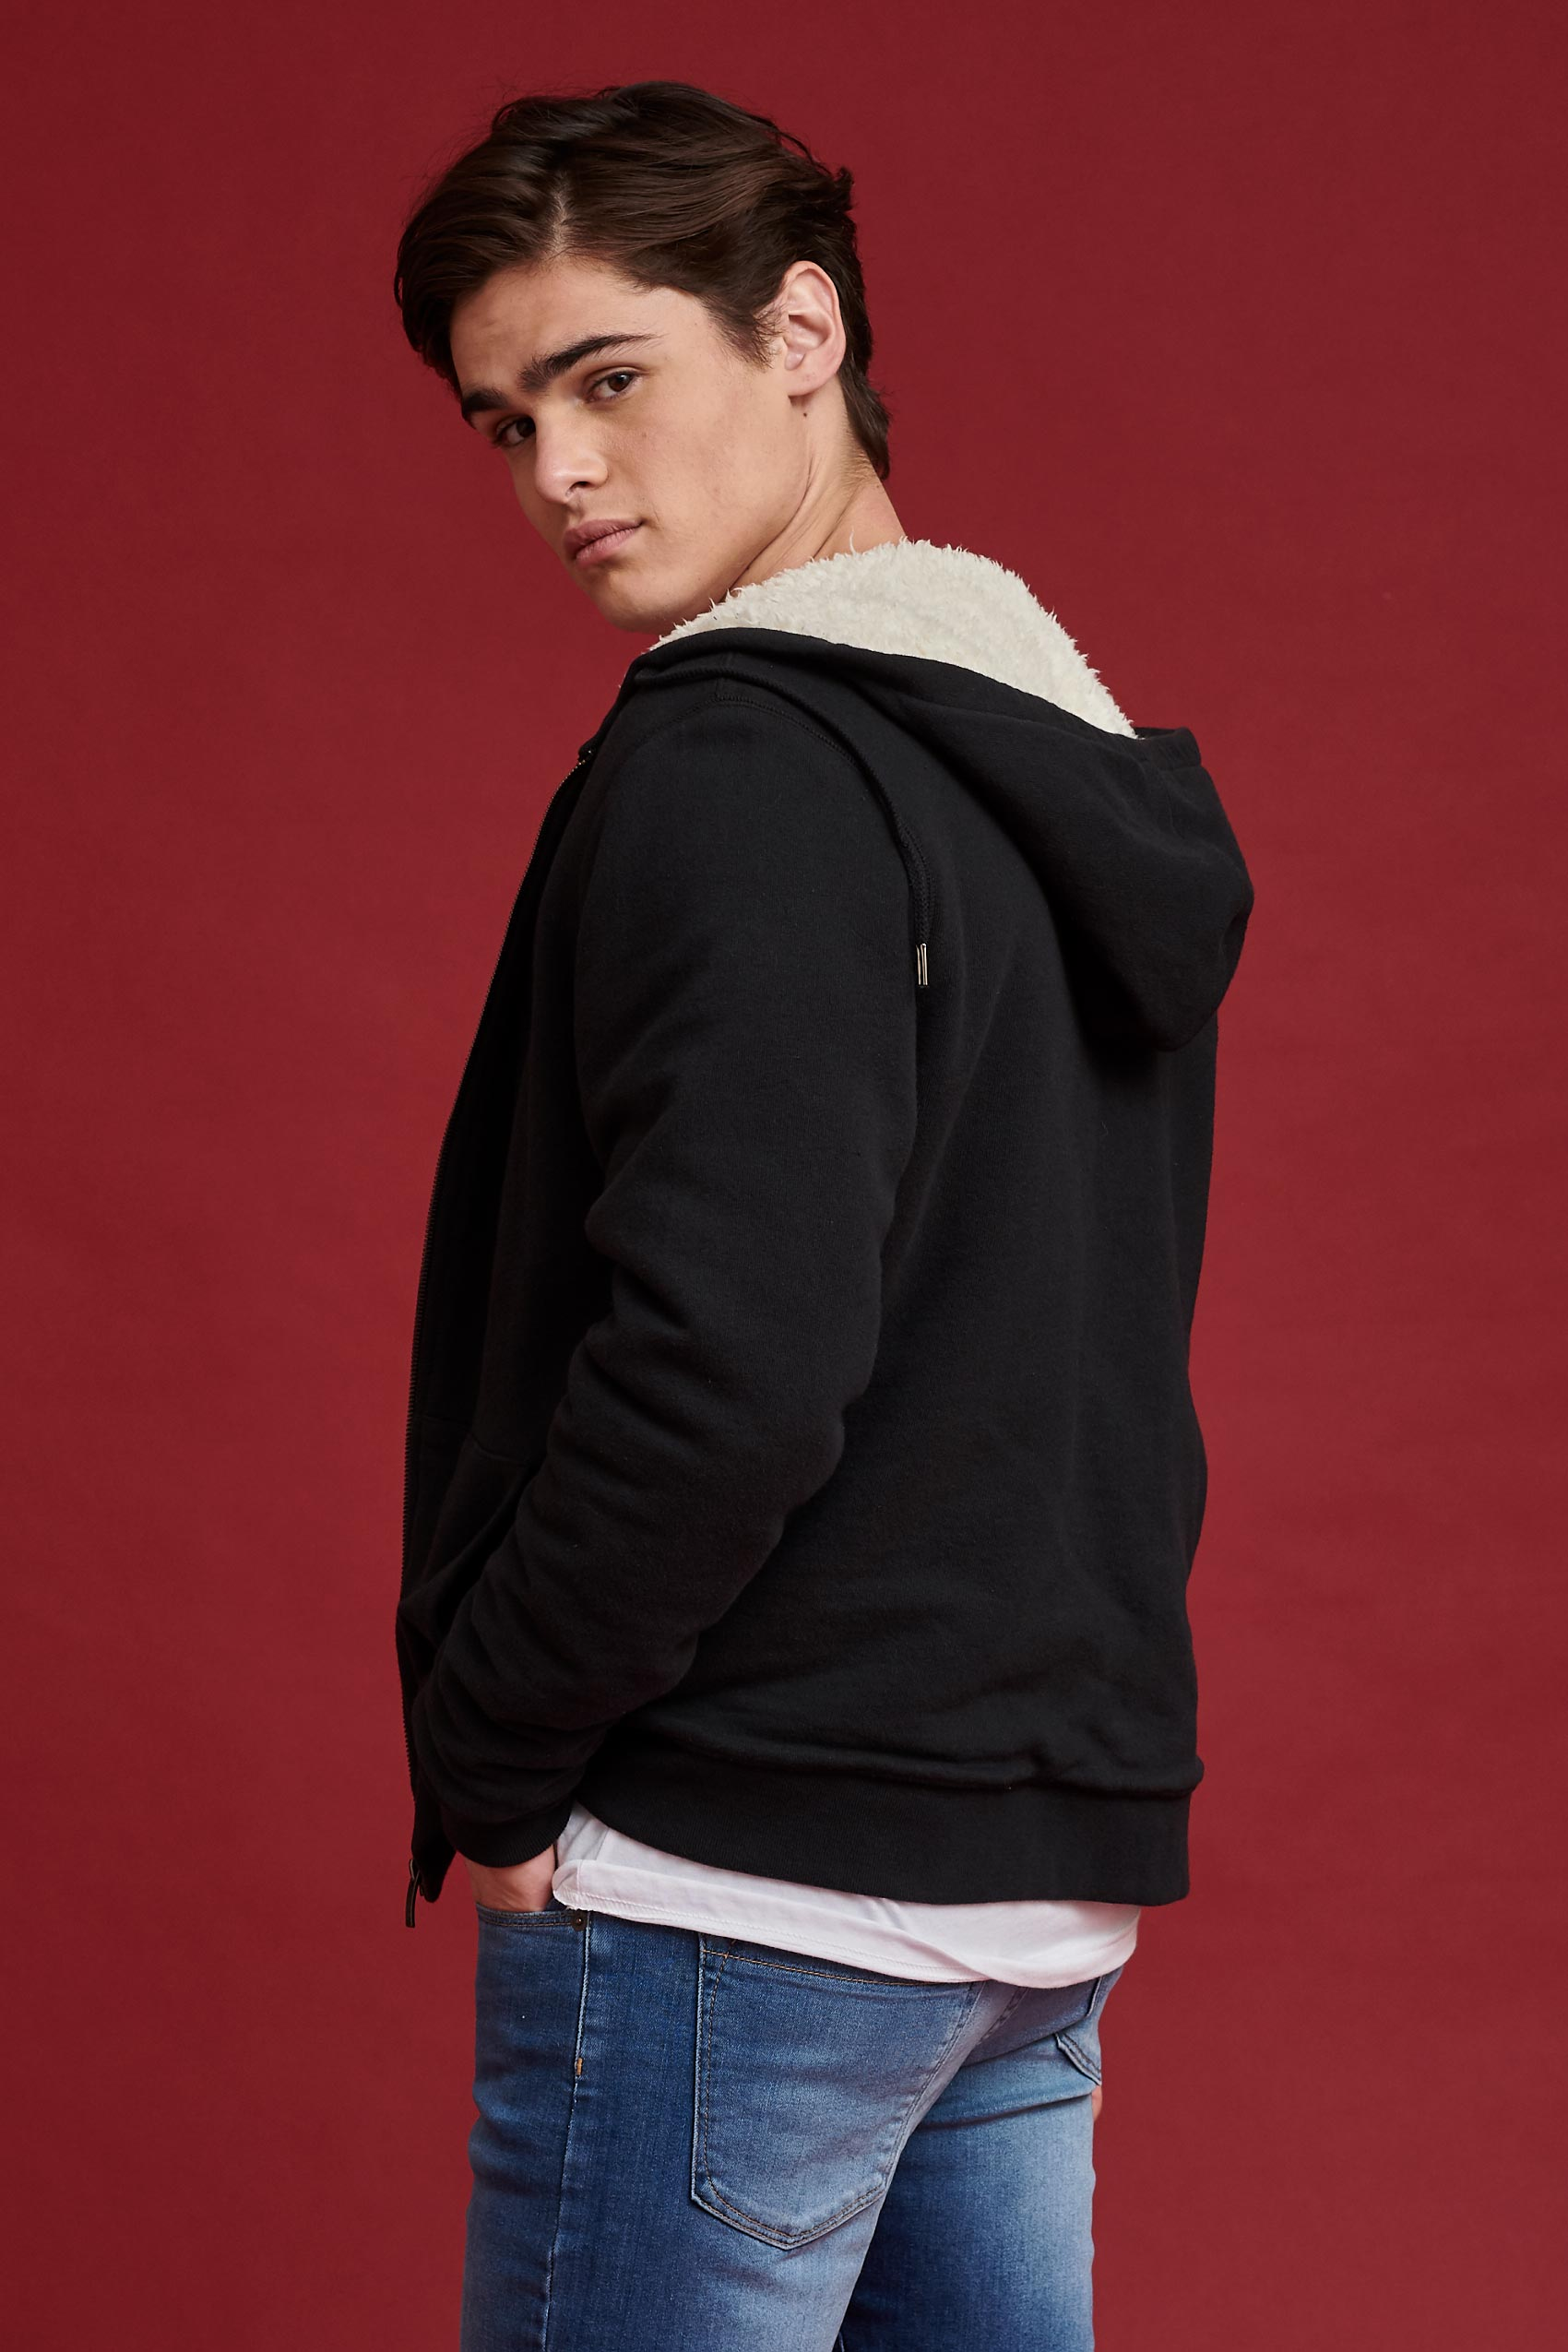 penguin_sherpa-lined-zip-hoodie_59-13-2020__picture-12931